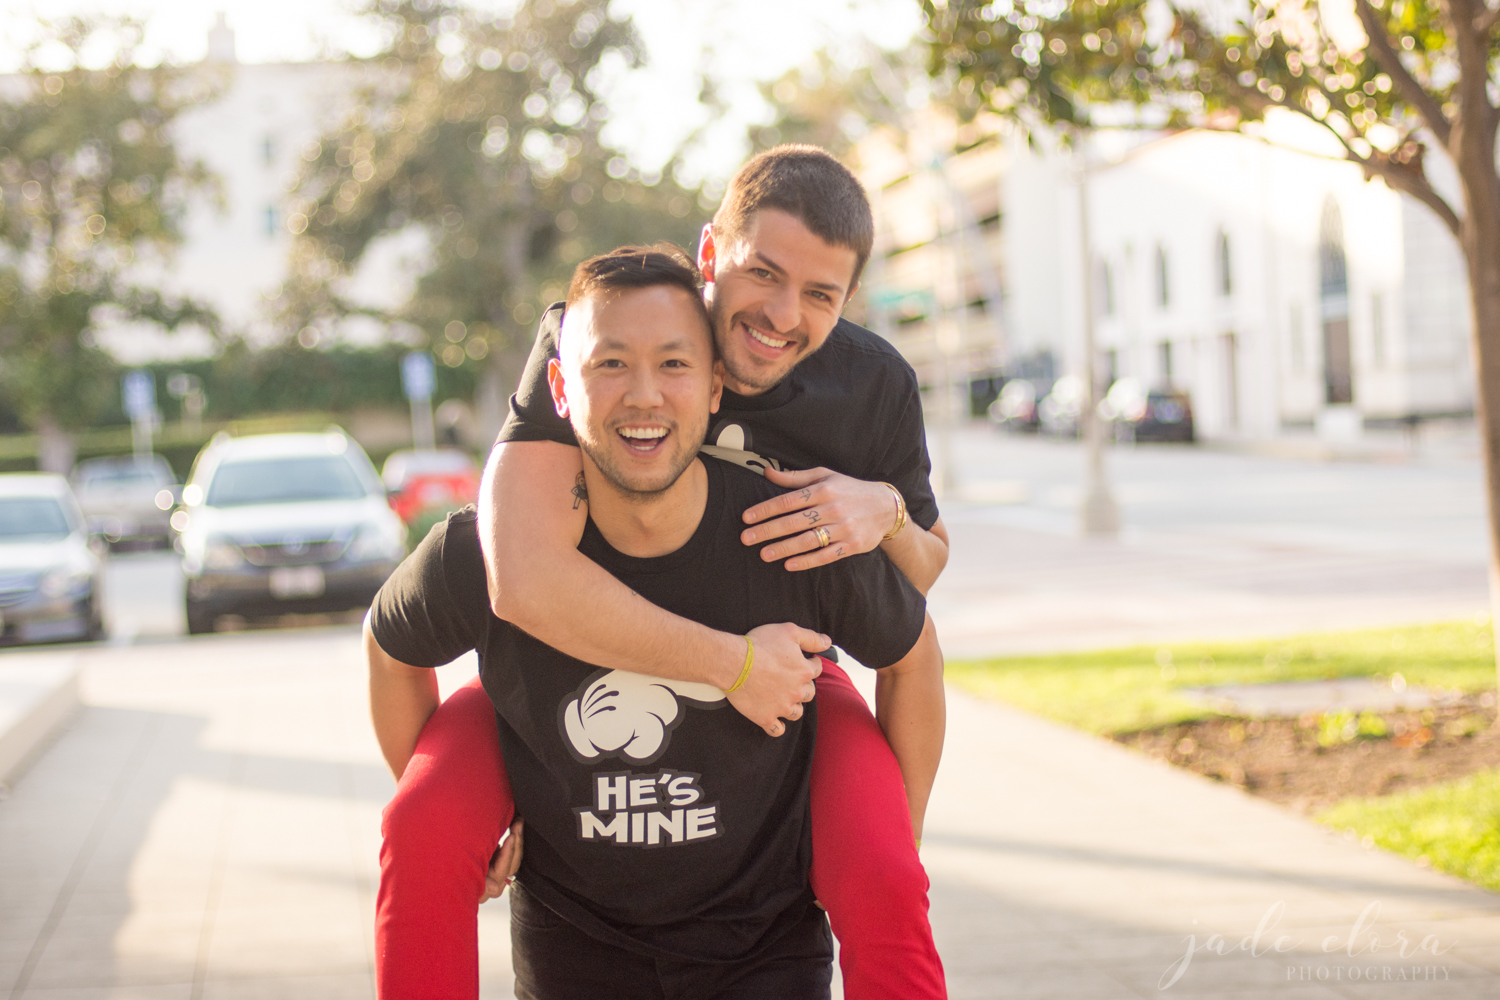 Gay Man Carries His Husband on Piggy Back While Both Laugh